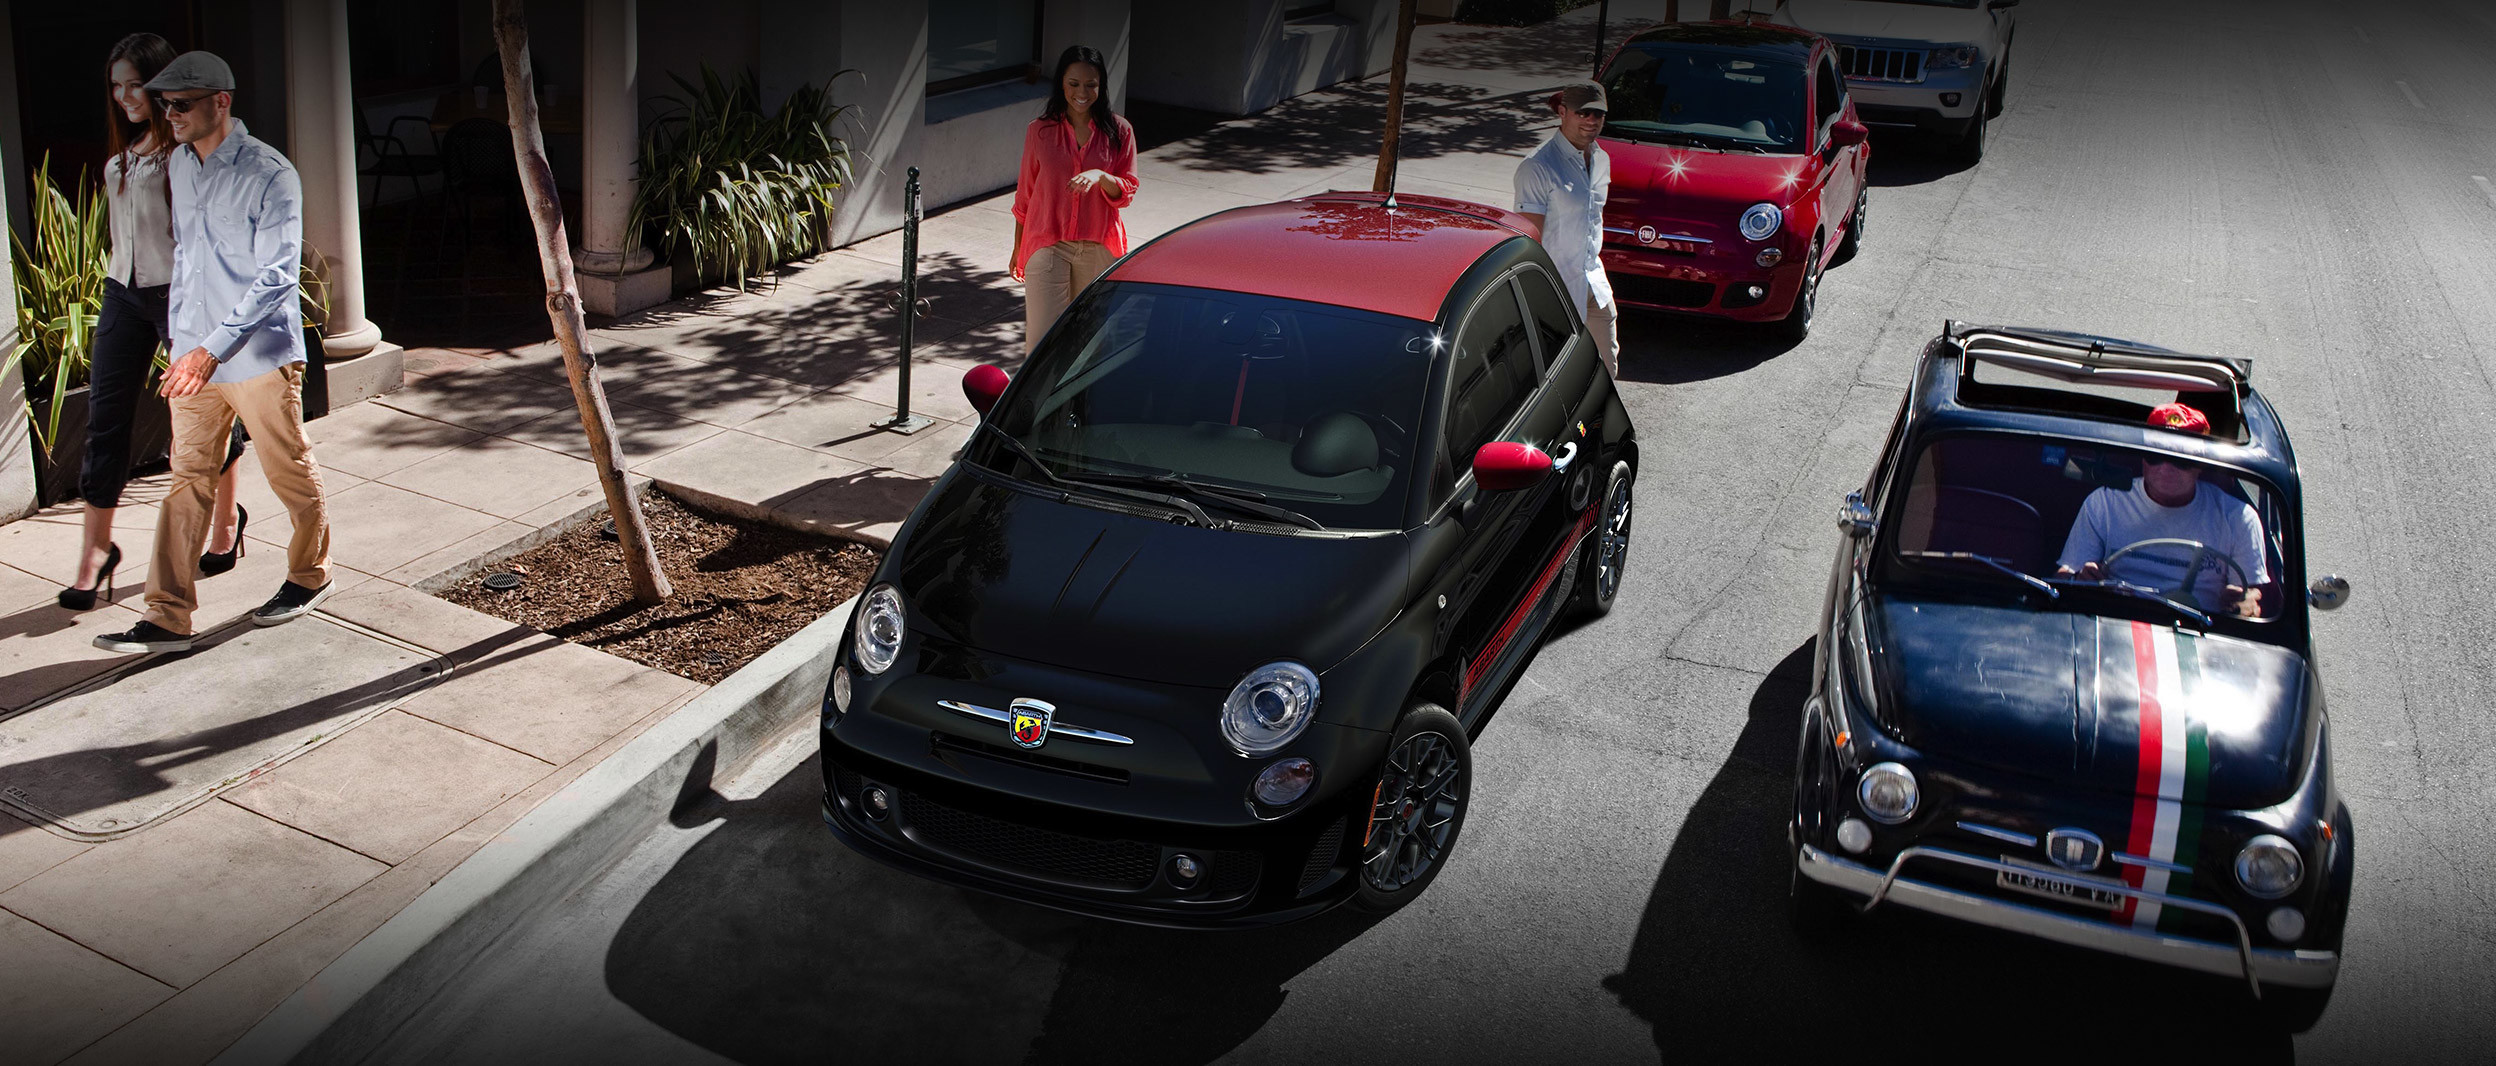 Black and red 2019 FIAT® 500 parked on the side of a street with a woman getting ready to enter the car.